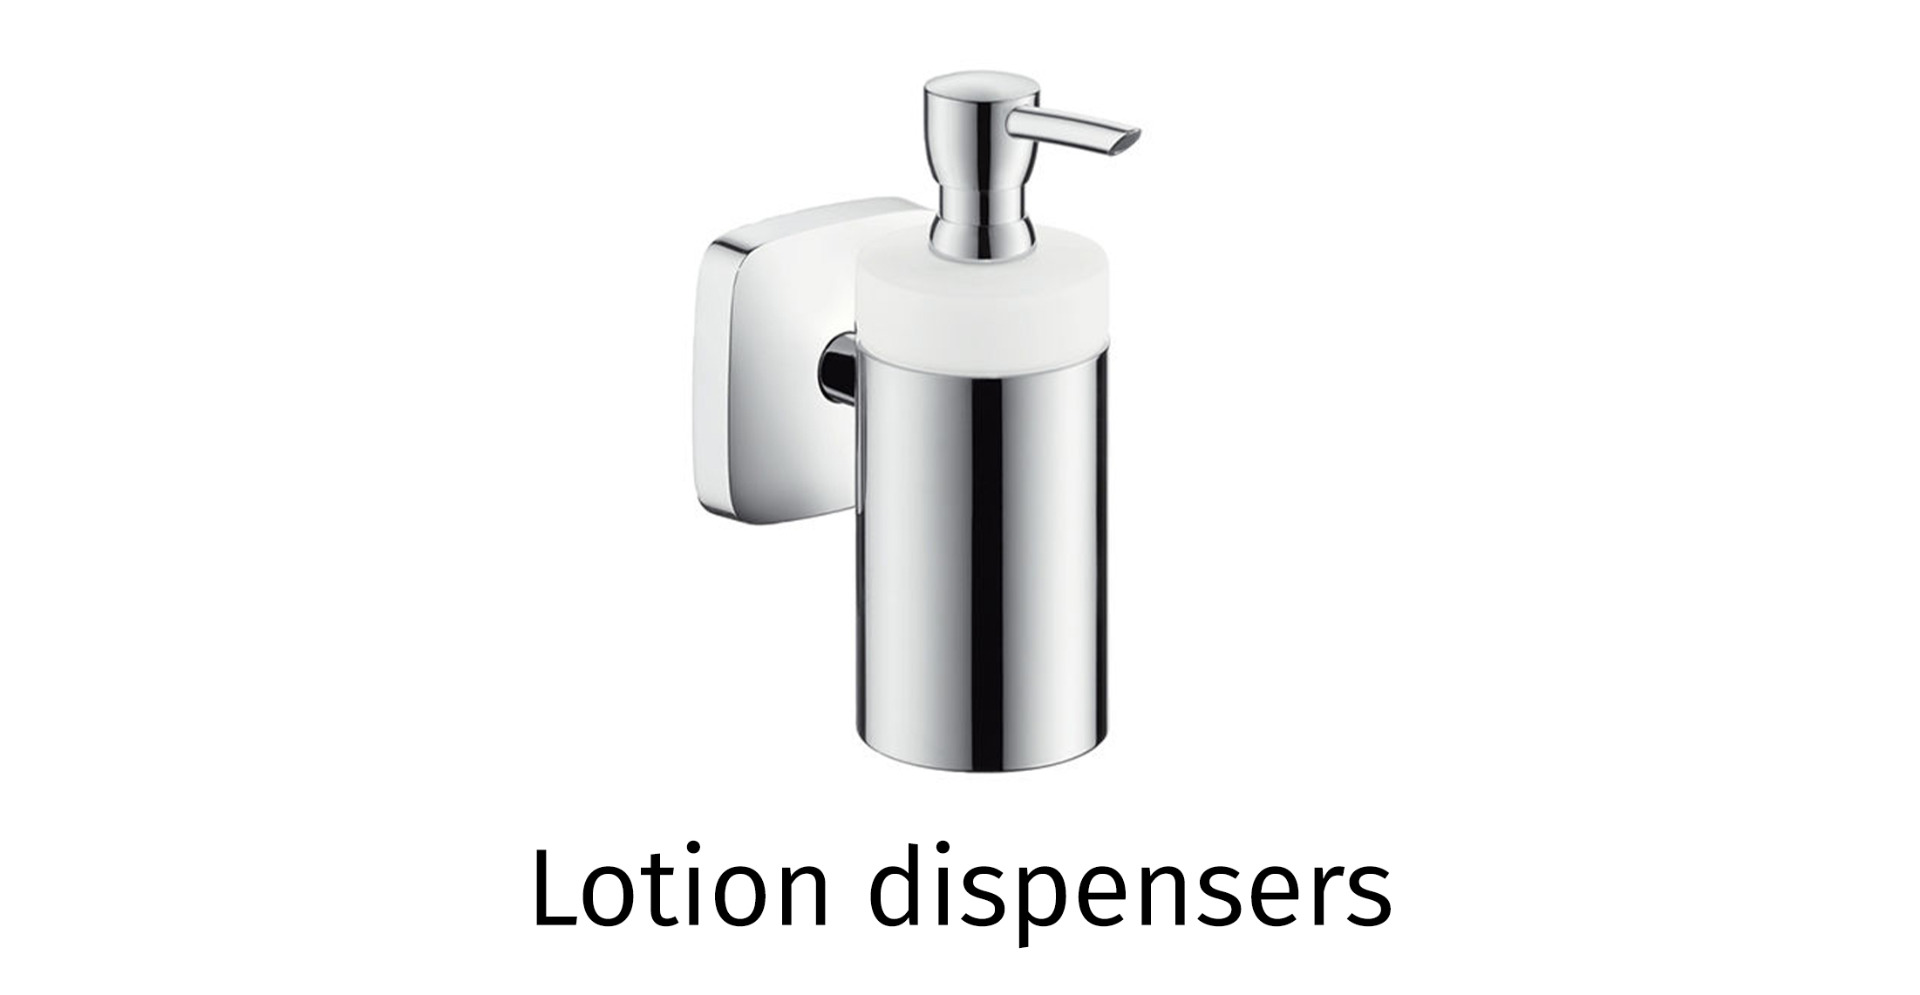 Lotion dispensers